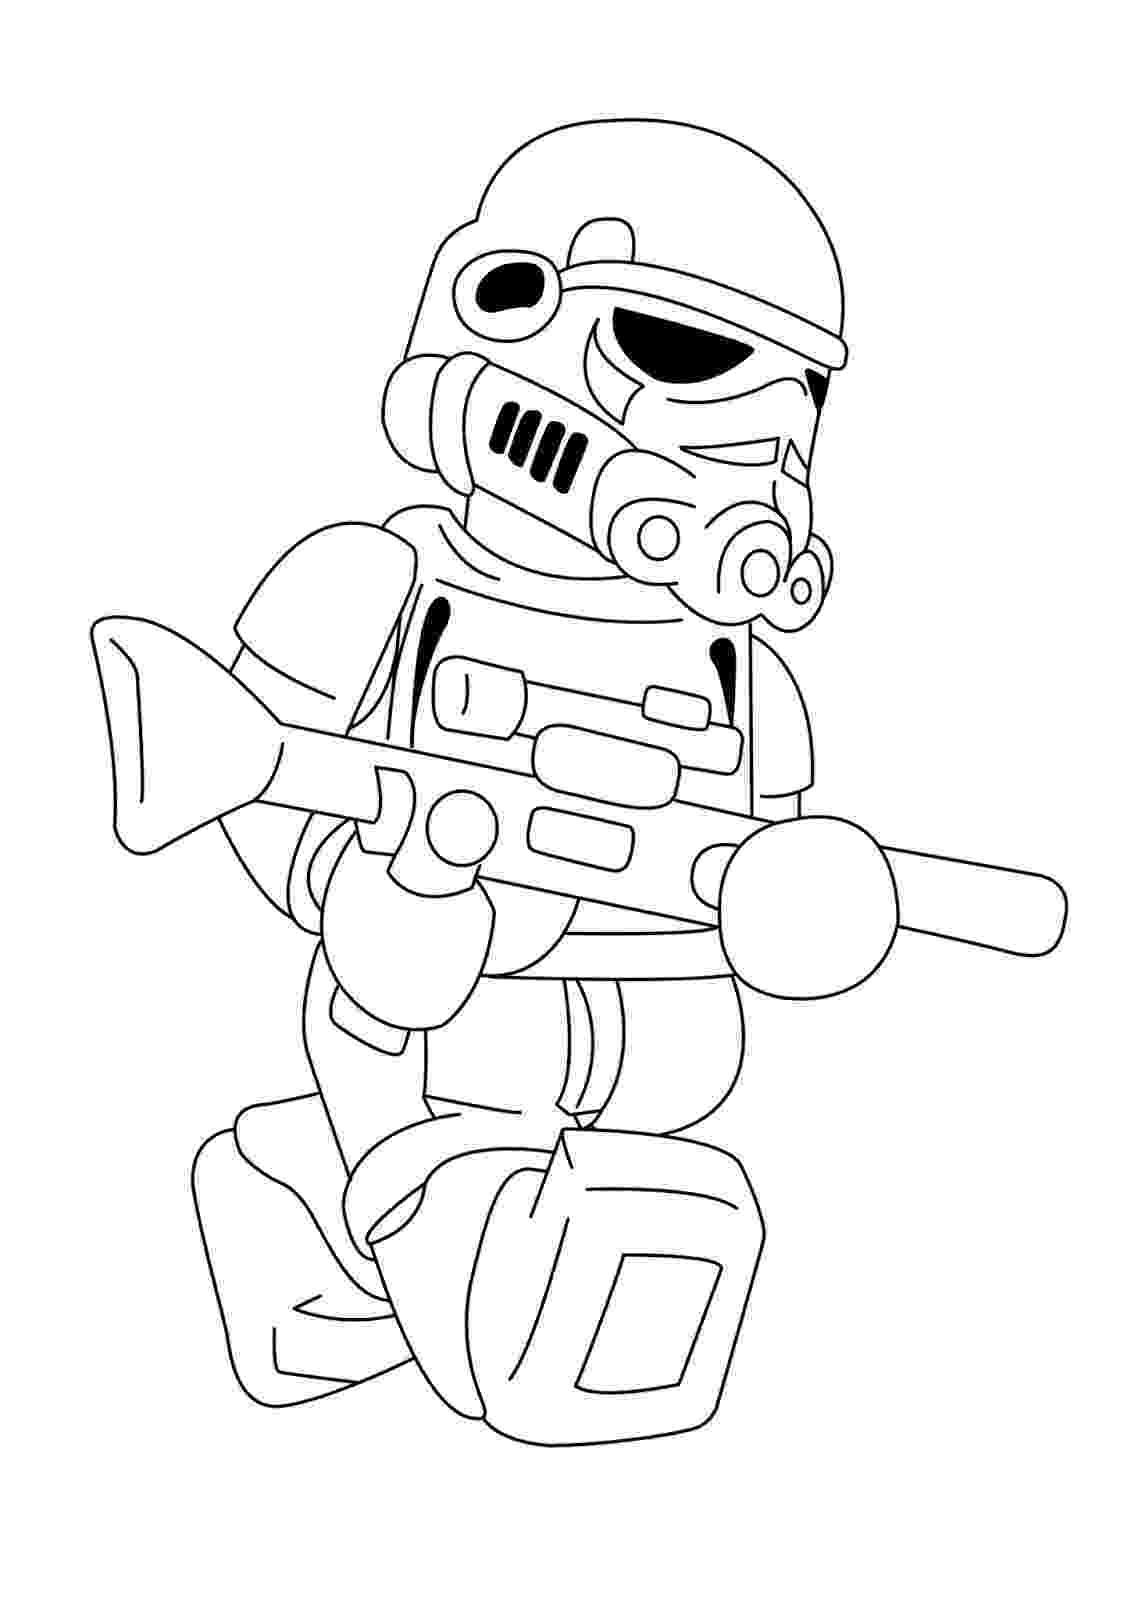 star wars lego colouring pages lego star wars coloring pages best coloring pages for kids wars pages colouring lego star